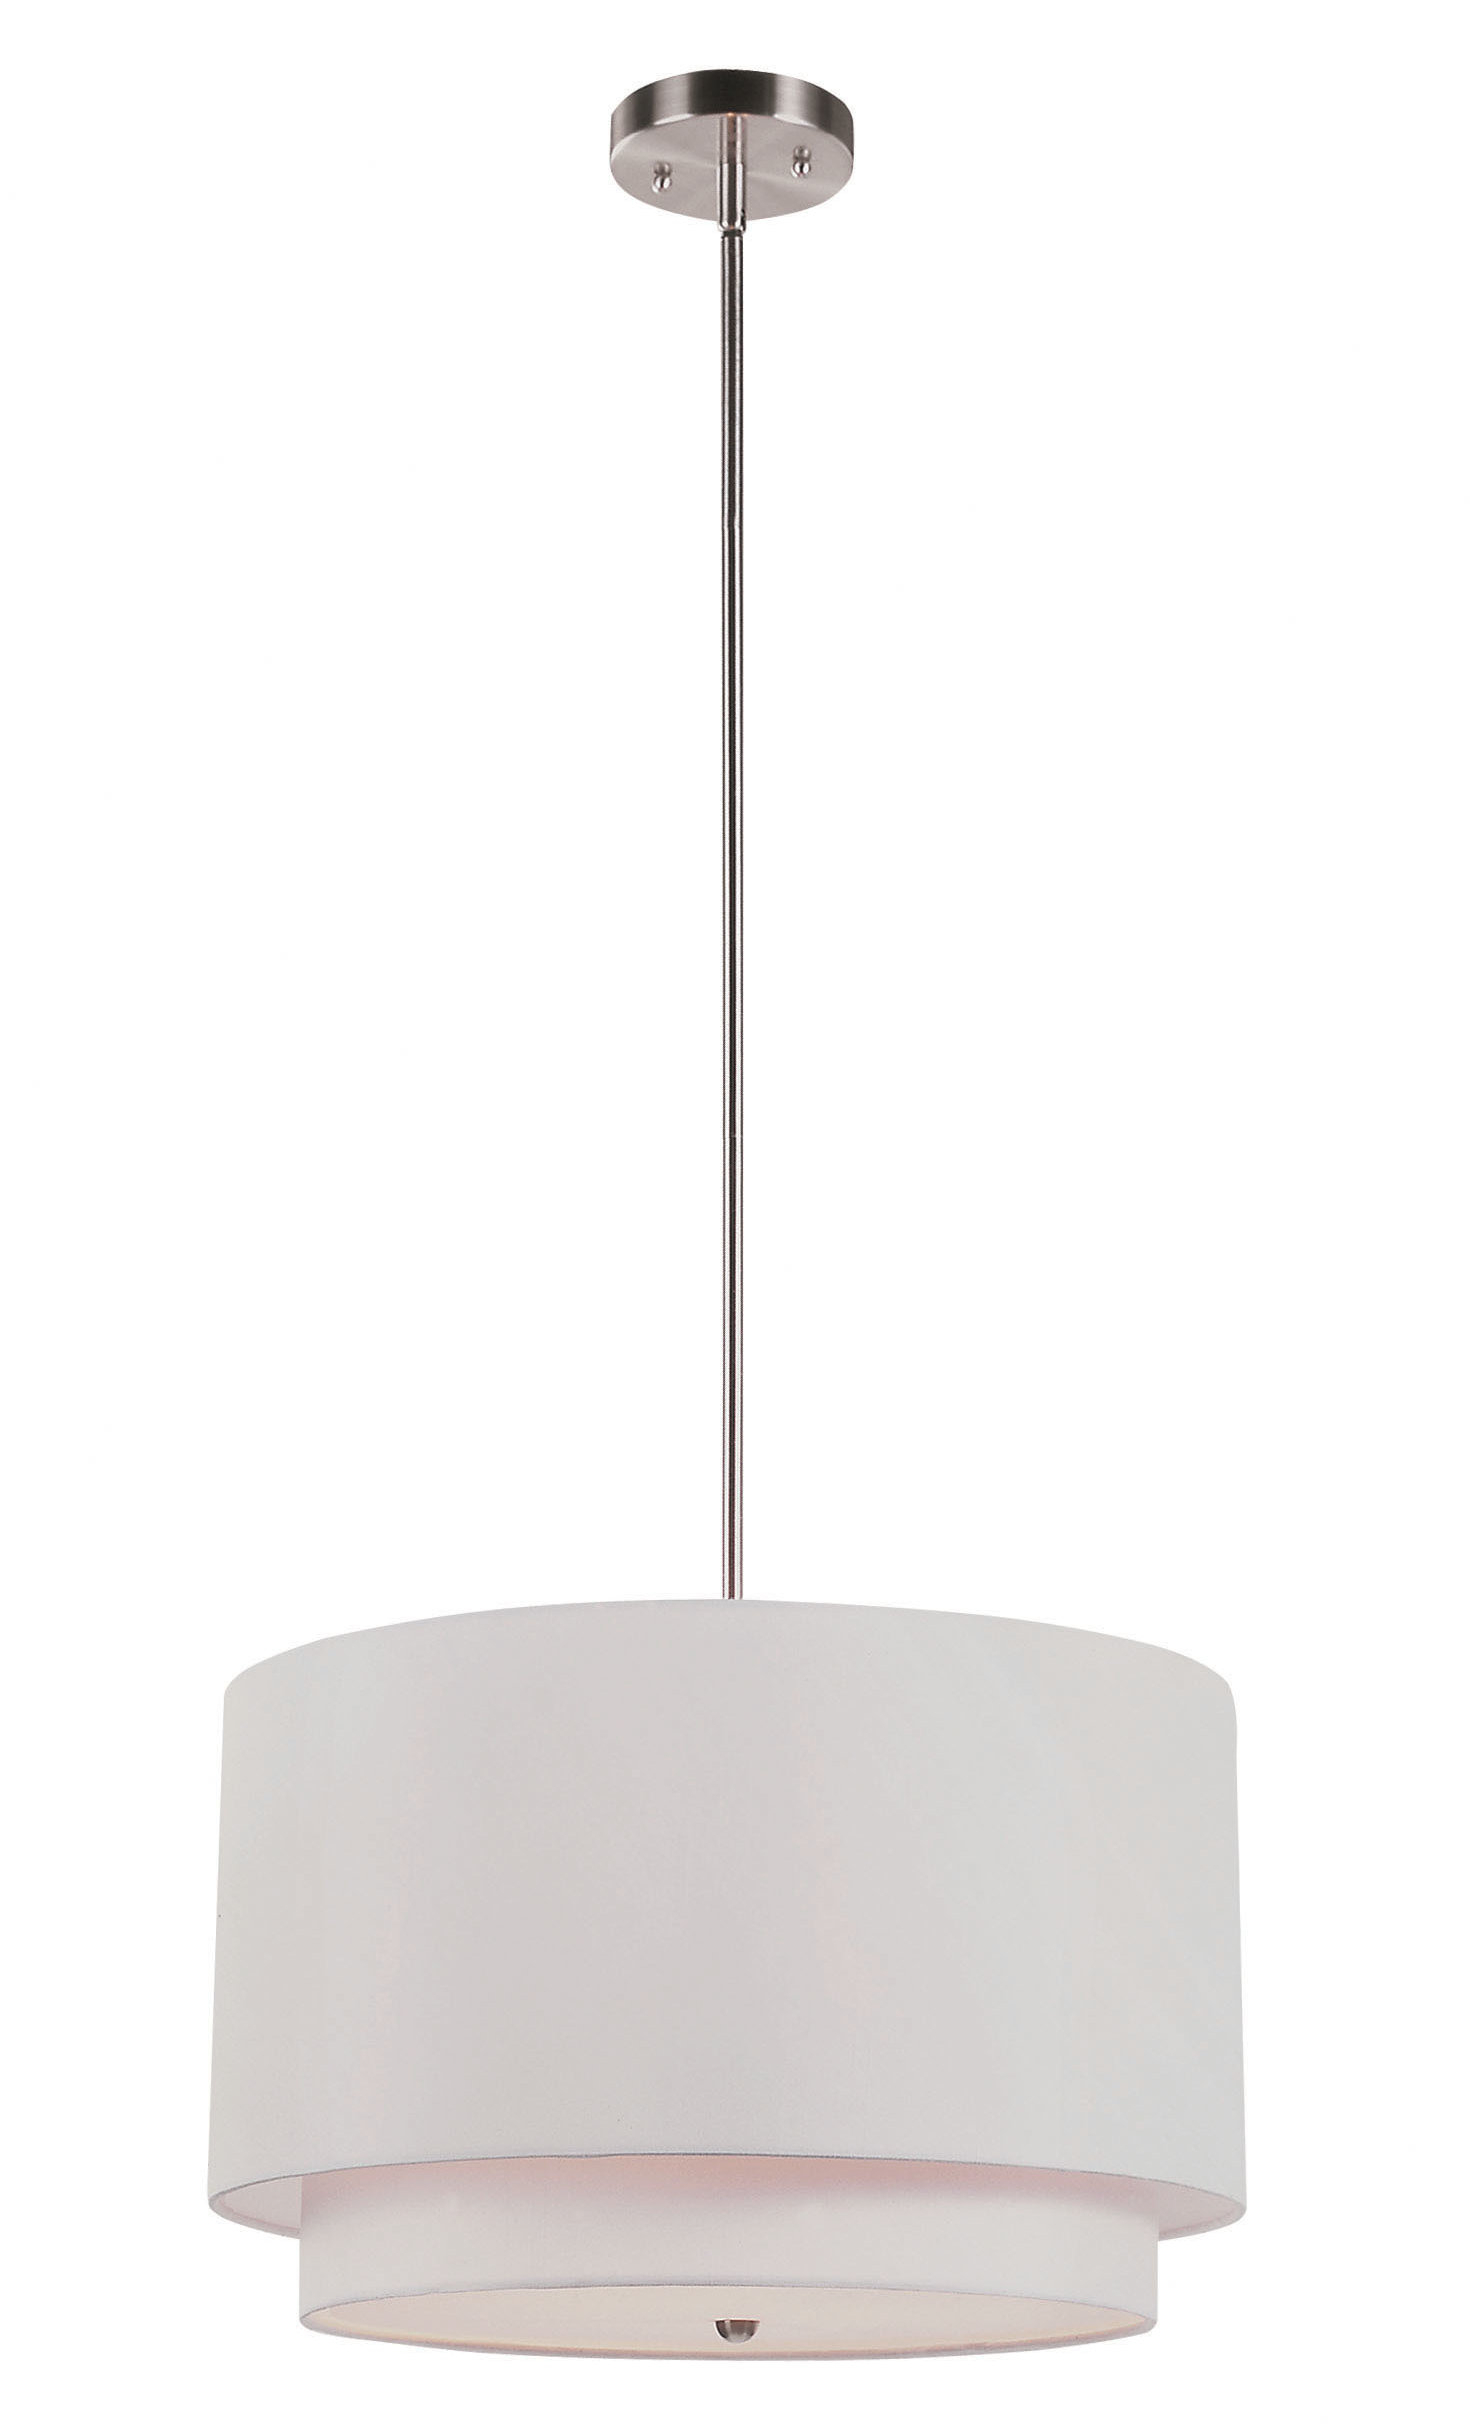 Friedland 3-Light Drum Tiered Pendant for Montes 3-Light Drum Chandeliers (Image 11 of 30)